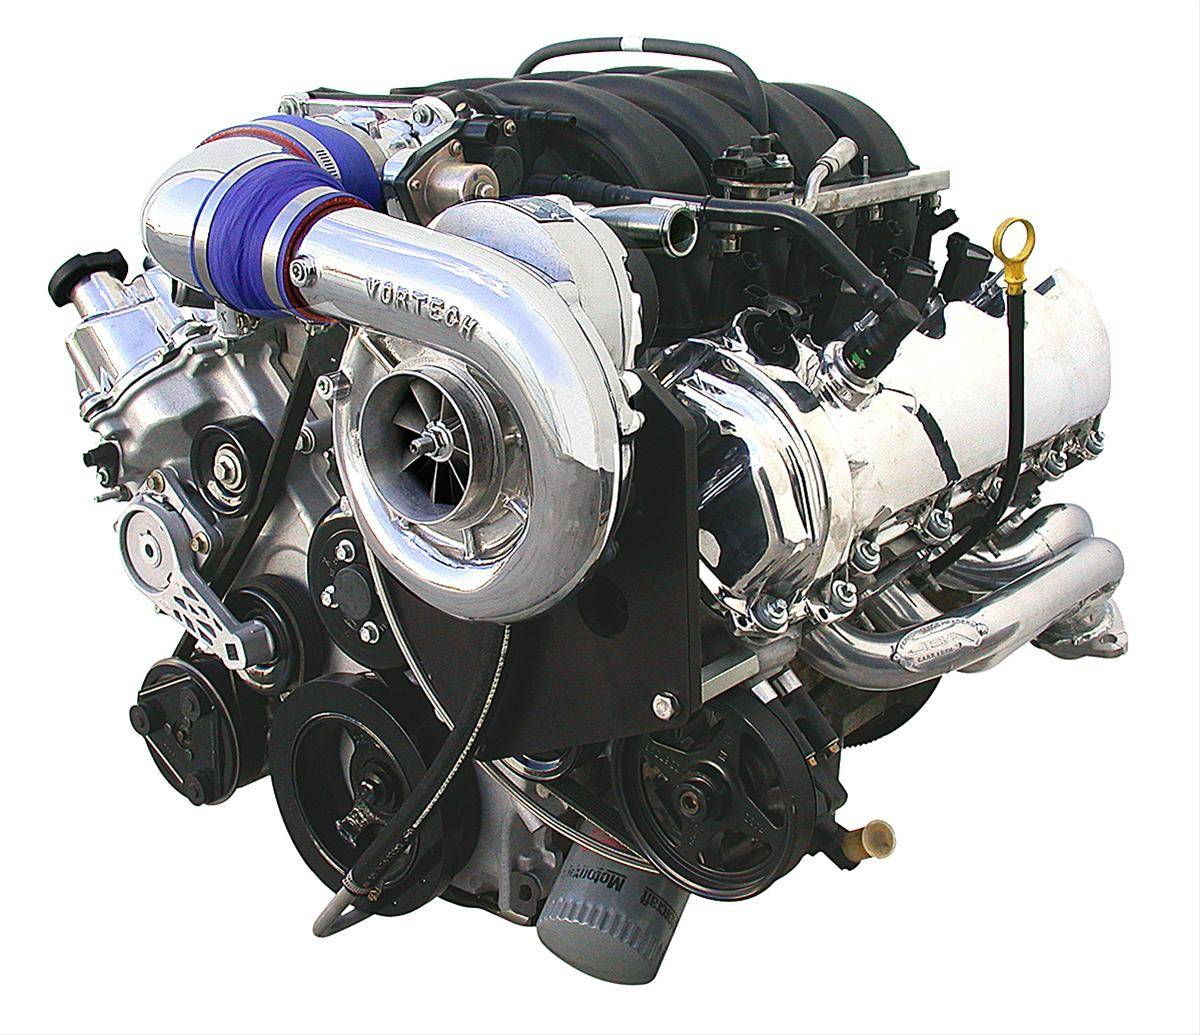 Vortech Centrifugal Supercharger System From Ess Tuning: Ford Mustang GT 2005-2006 4.6 3V Vortech Supercharger V-3